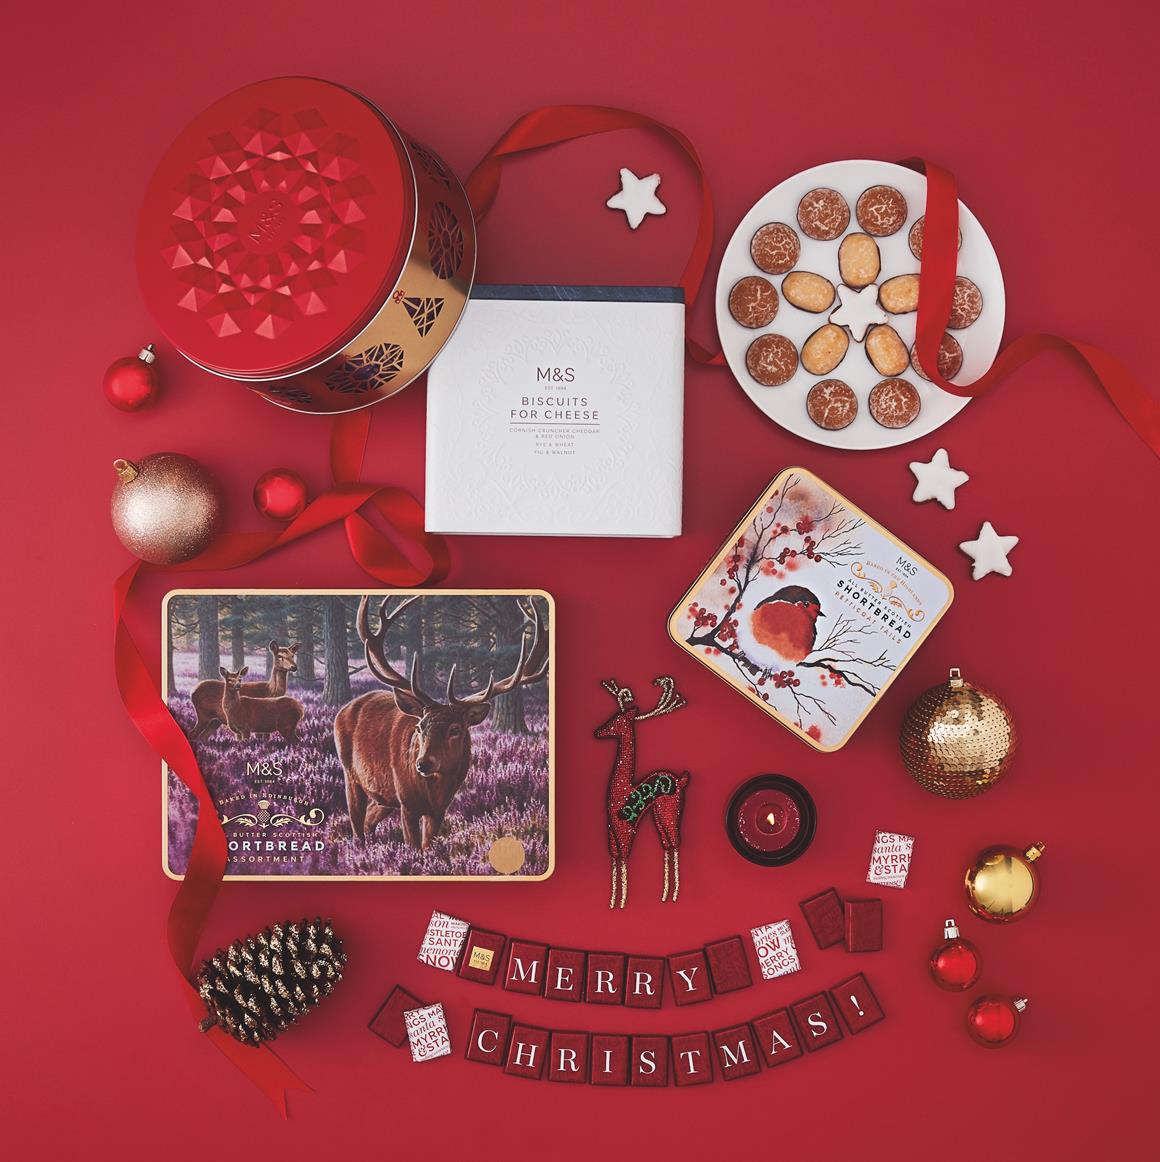 Best Christmas Gift Ideas: Marks & Spencer Presents The Best Gift Ideas For An